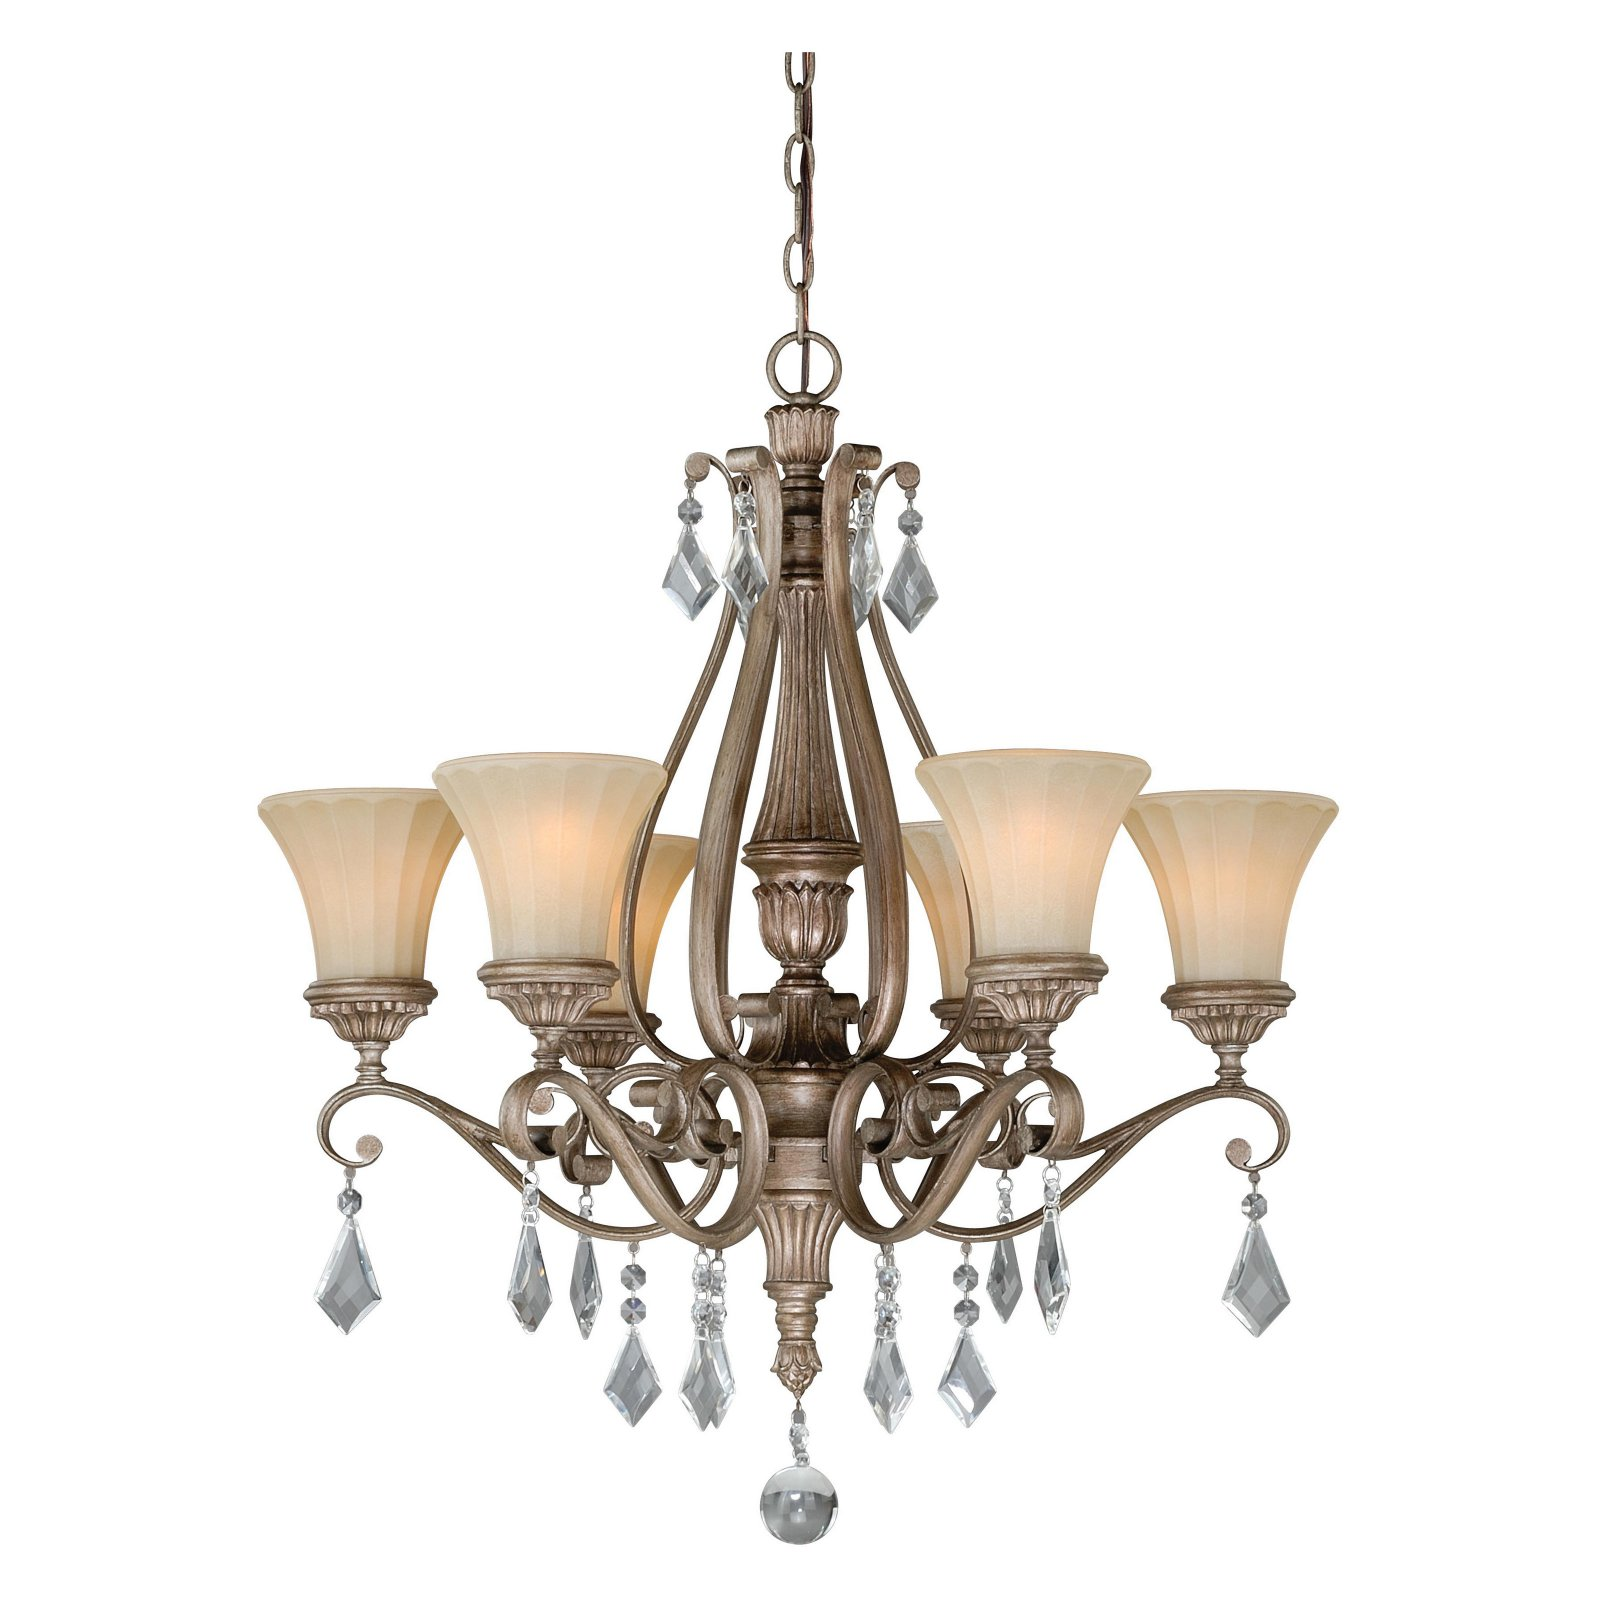 Vaxcel Lighting Avenant H0139 Chandelier